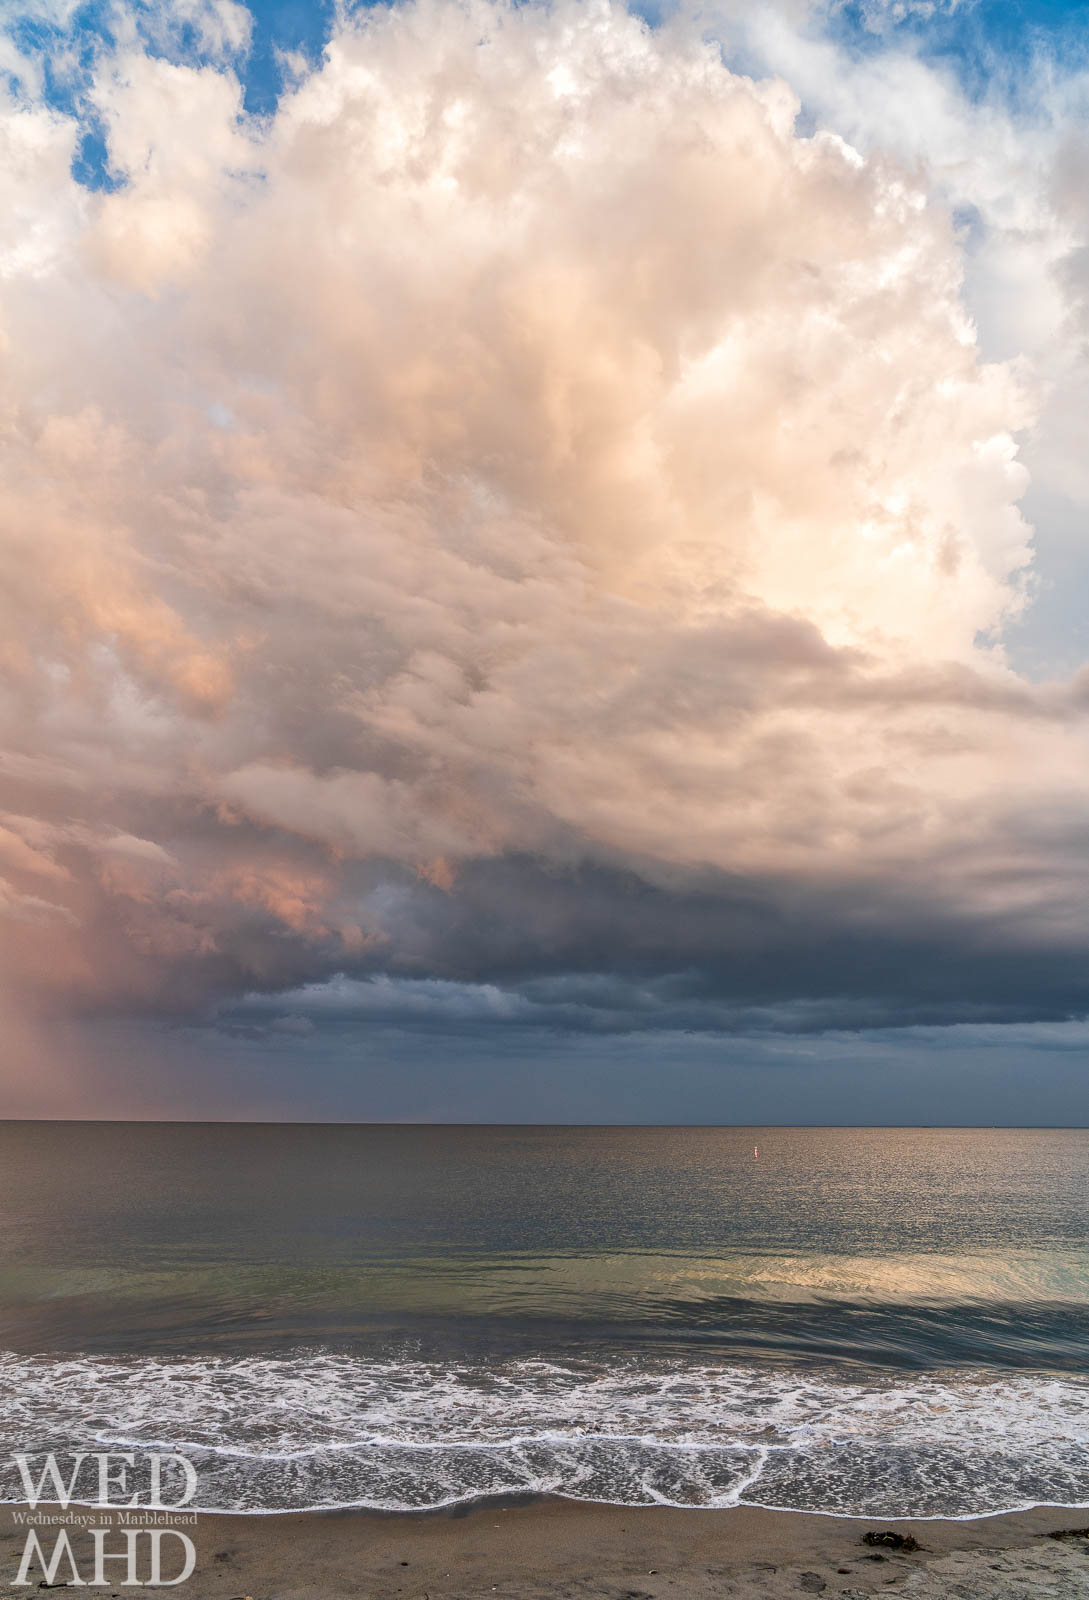 Last night at Devereux Beach featured huge cloud formations but that ocean glow might be my favorite part of this shot